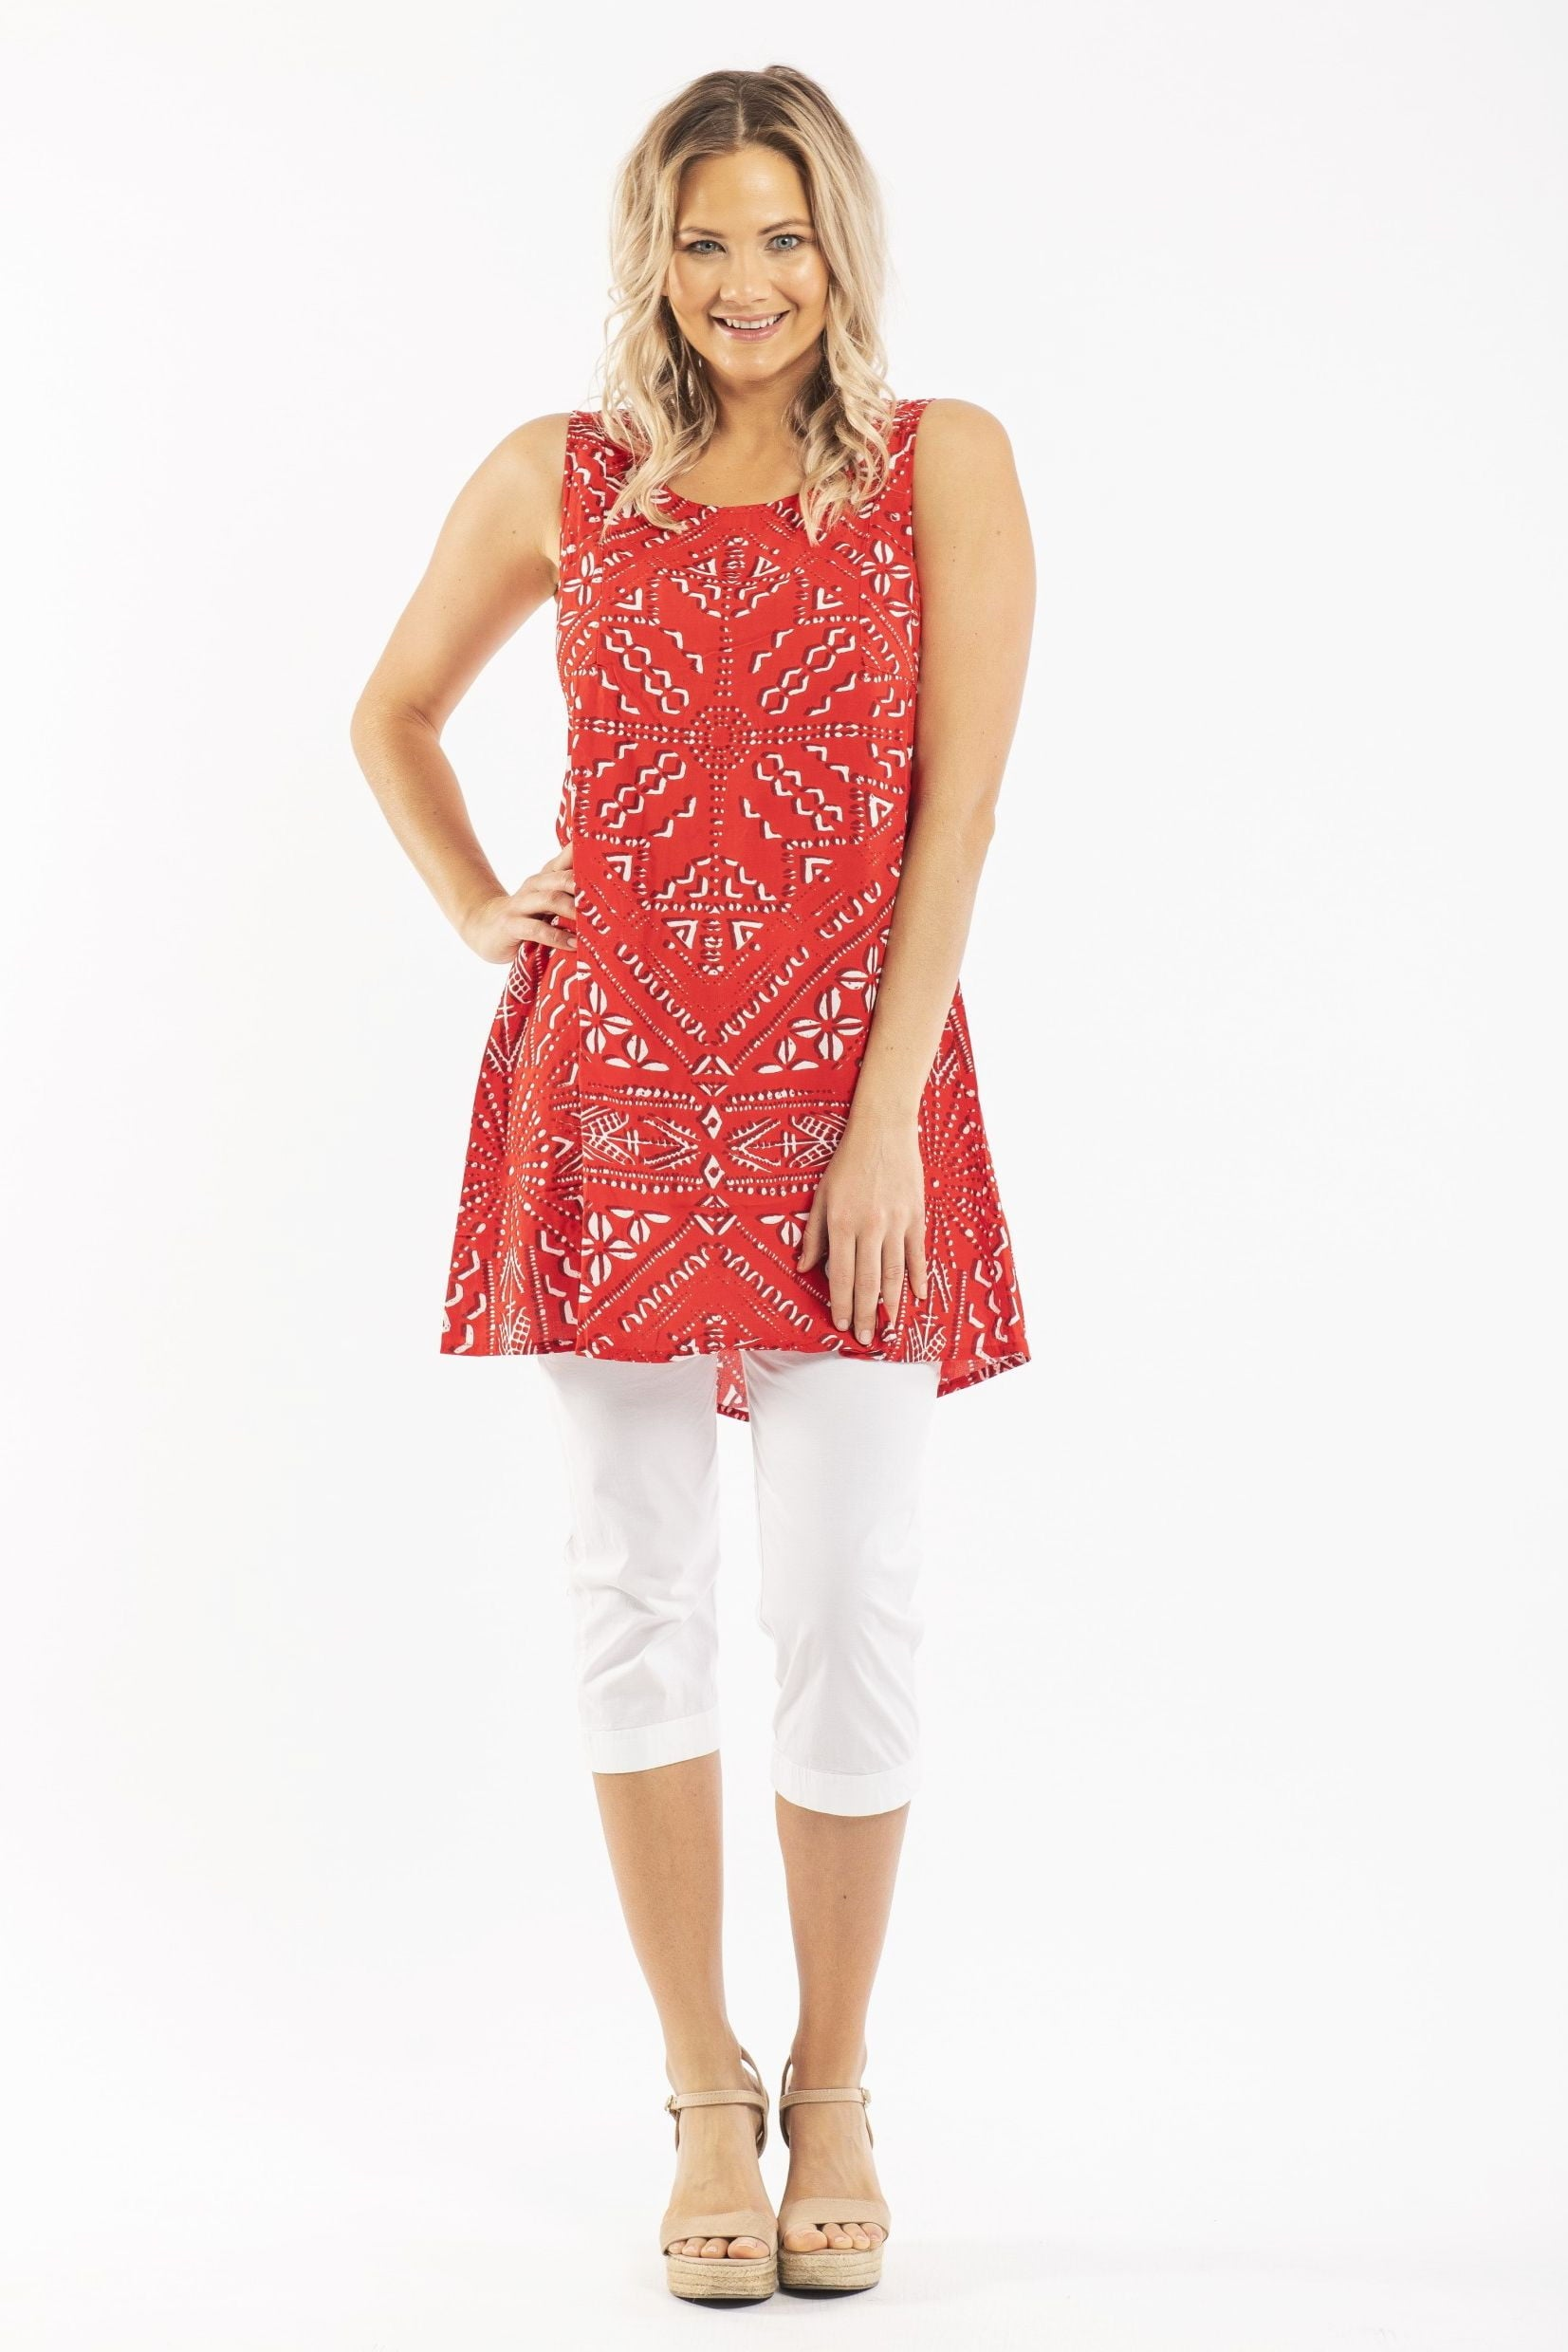 Red White Sleeveless Tunic Top | I Love Tunics | Tunic Tops | Tunic | Tunic Dresses  | womens clothing online